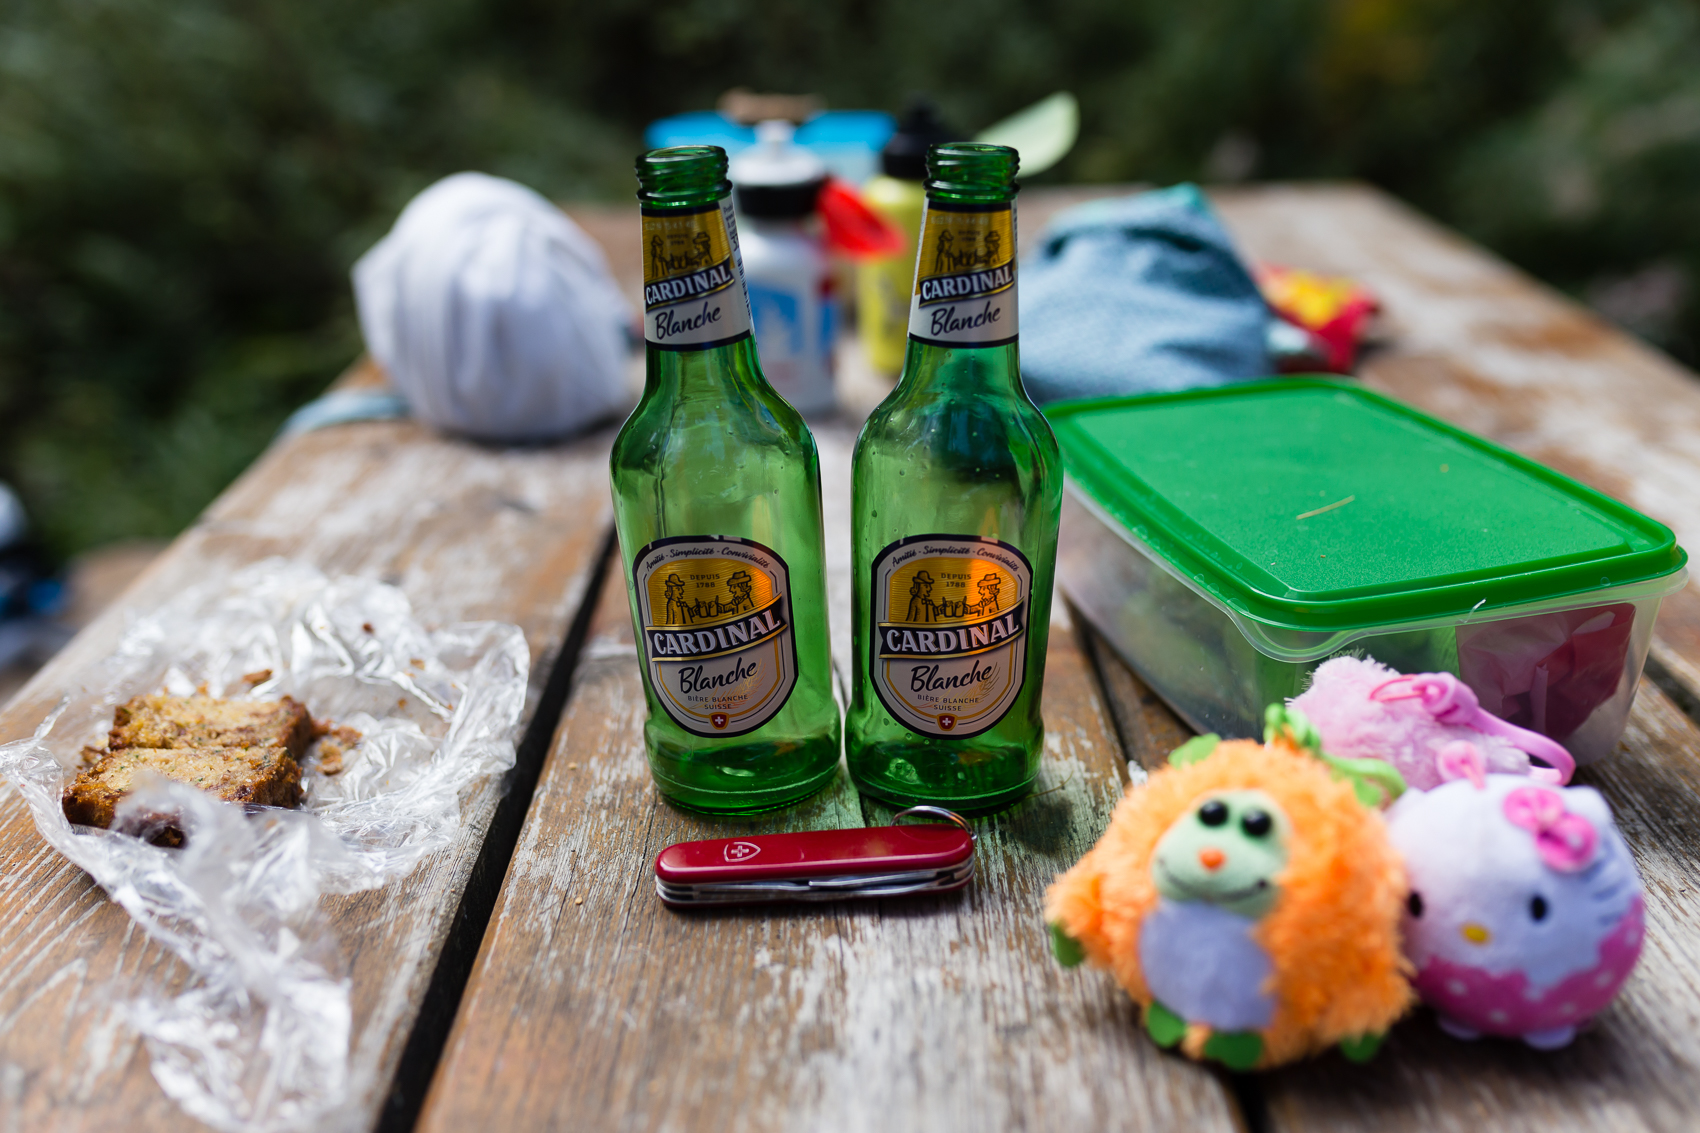 beer bottles on the table, Swiss army knife